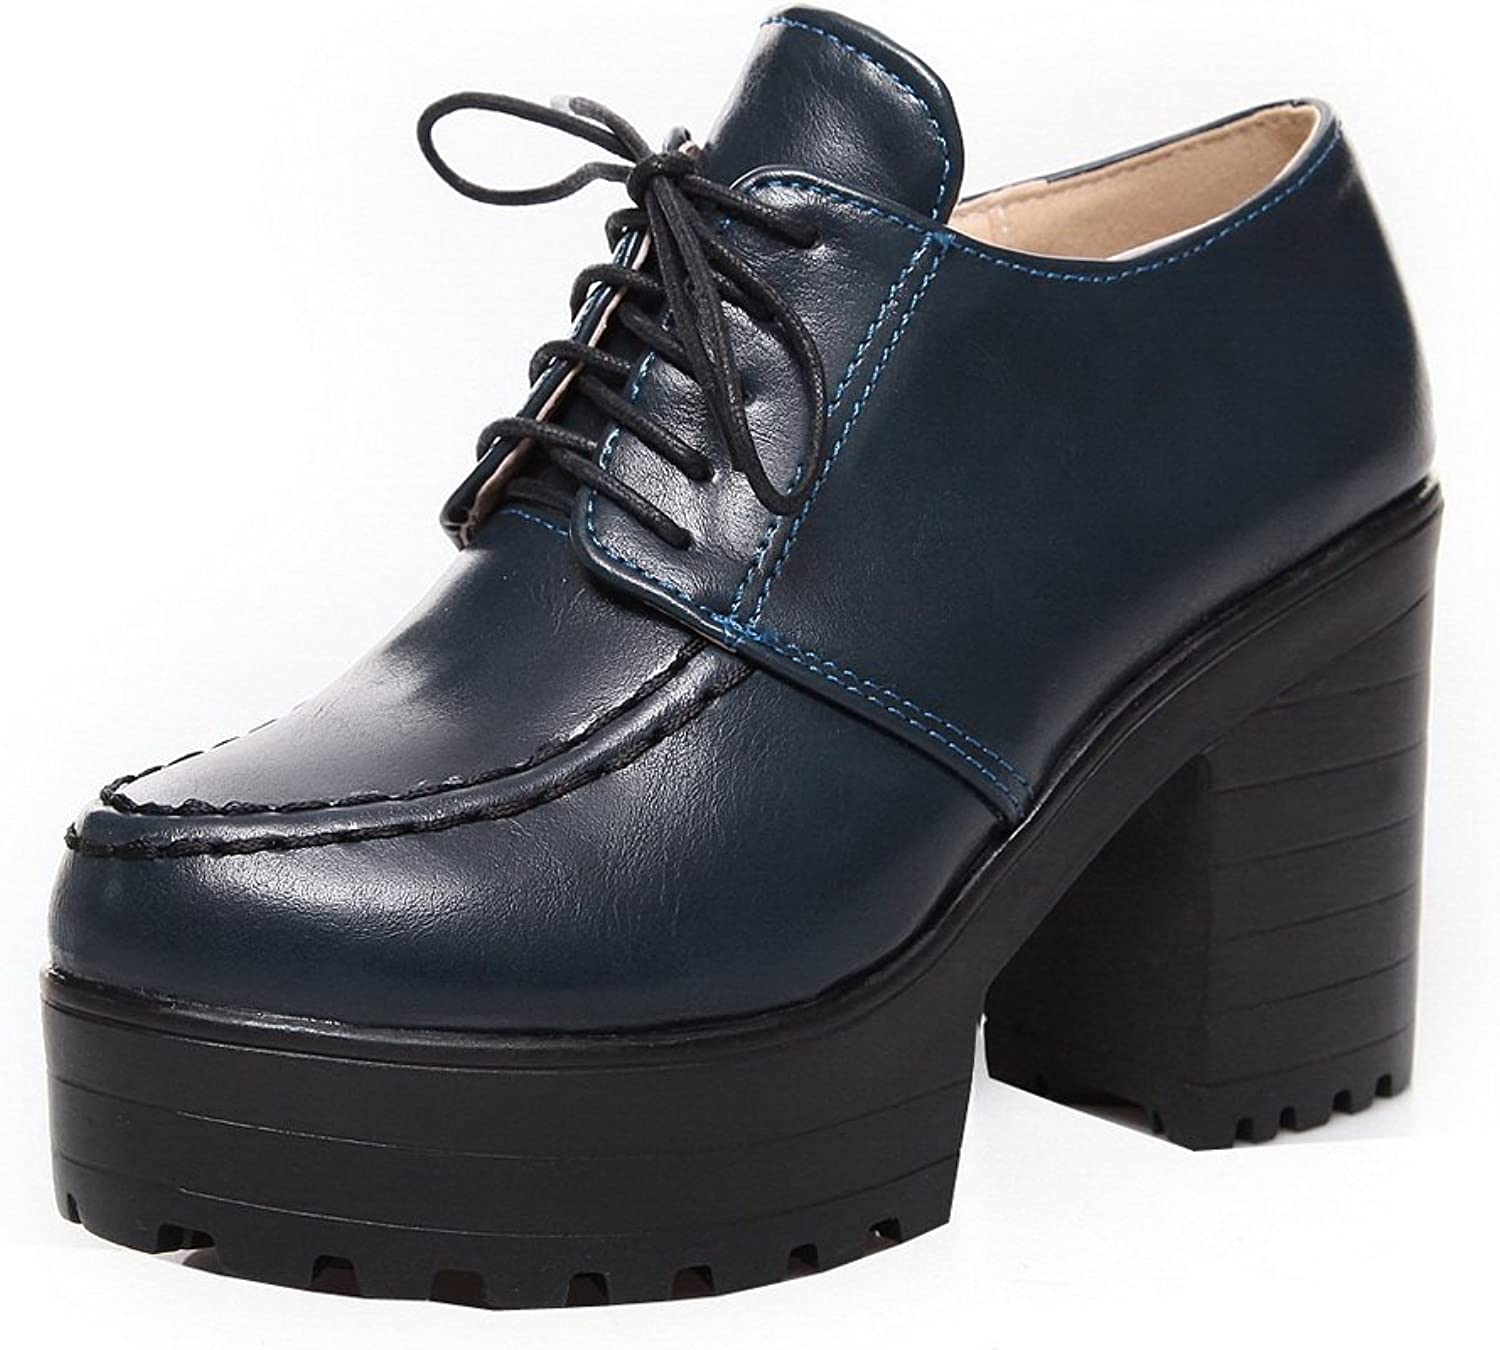 WeiPoot Women's PU Lace-up Round Closed Toe High-Heels Solid Pumps-shoes